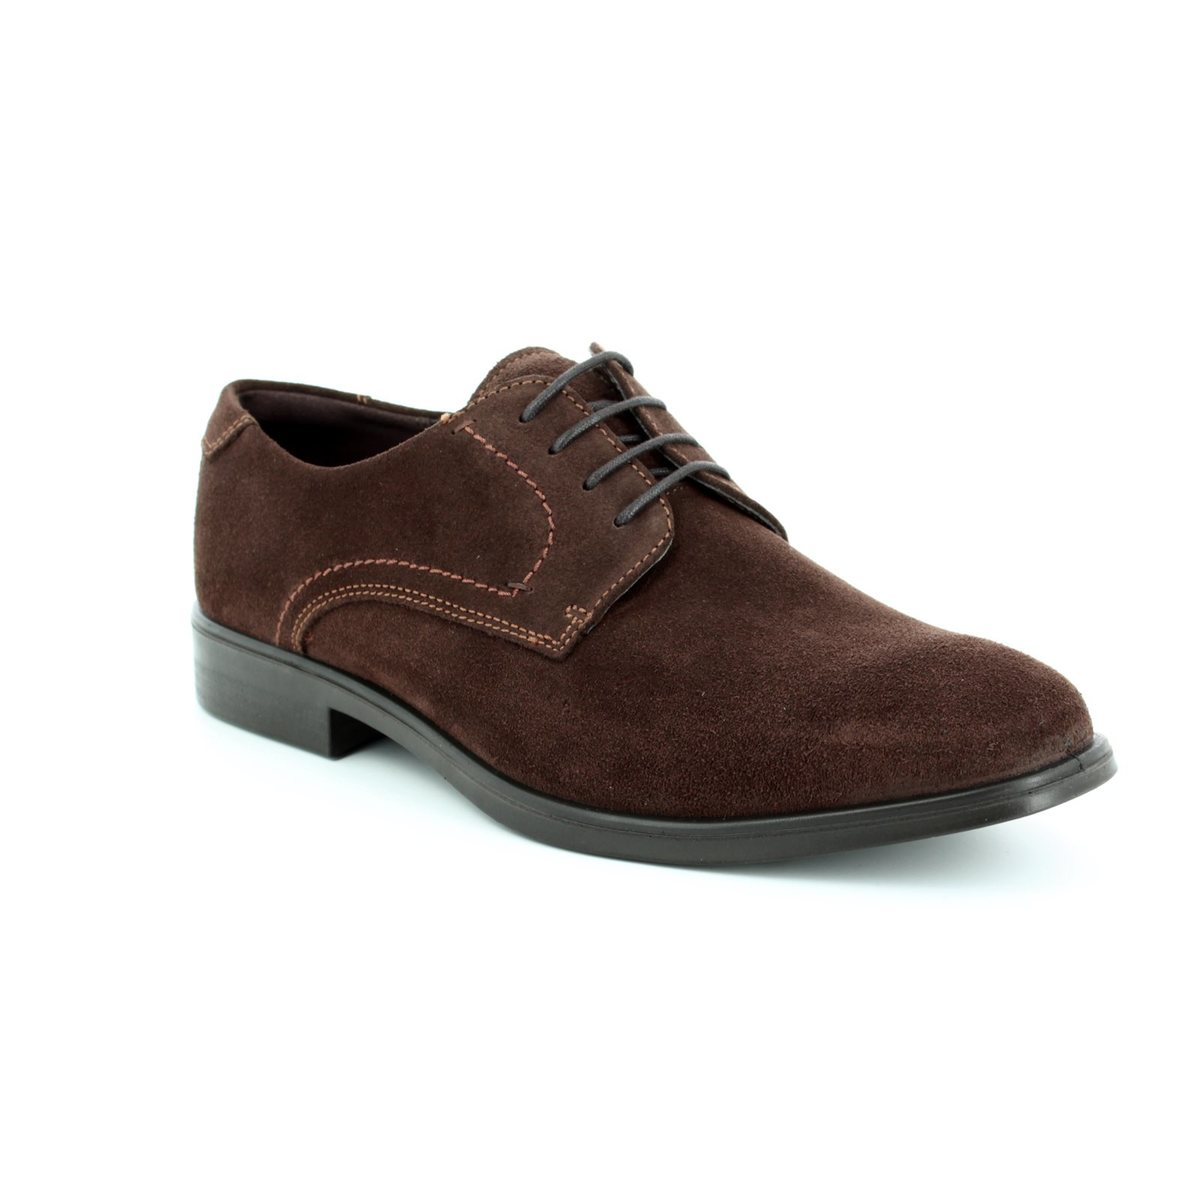 ECCO Formal Shoes - Brown Suede - 621634 05072 MELBOURNE 1c4ed3264e4f